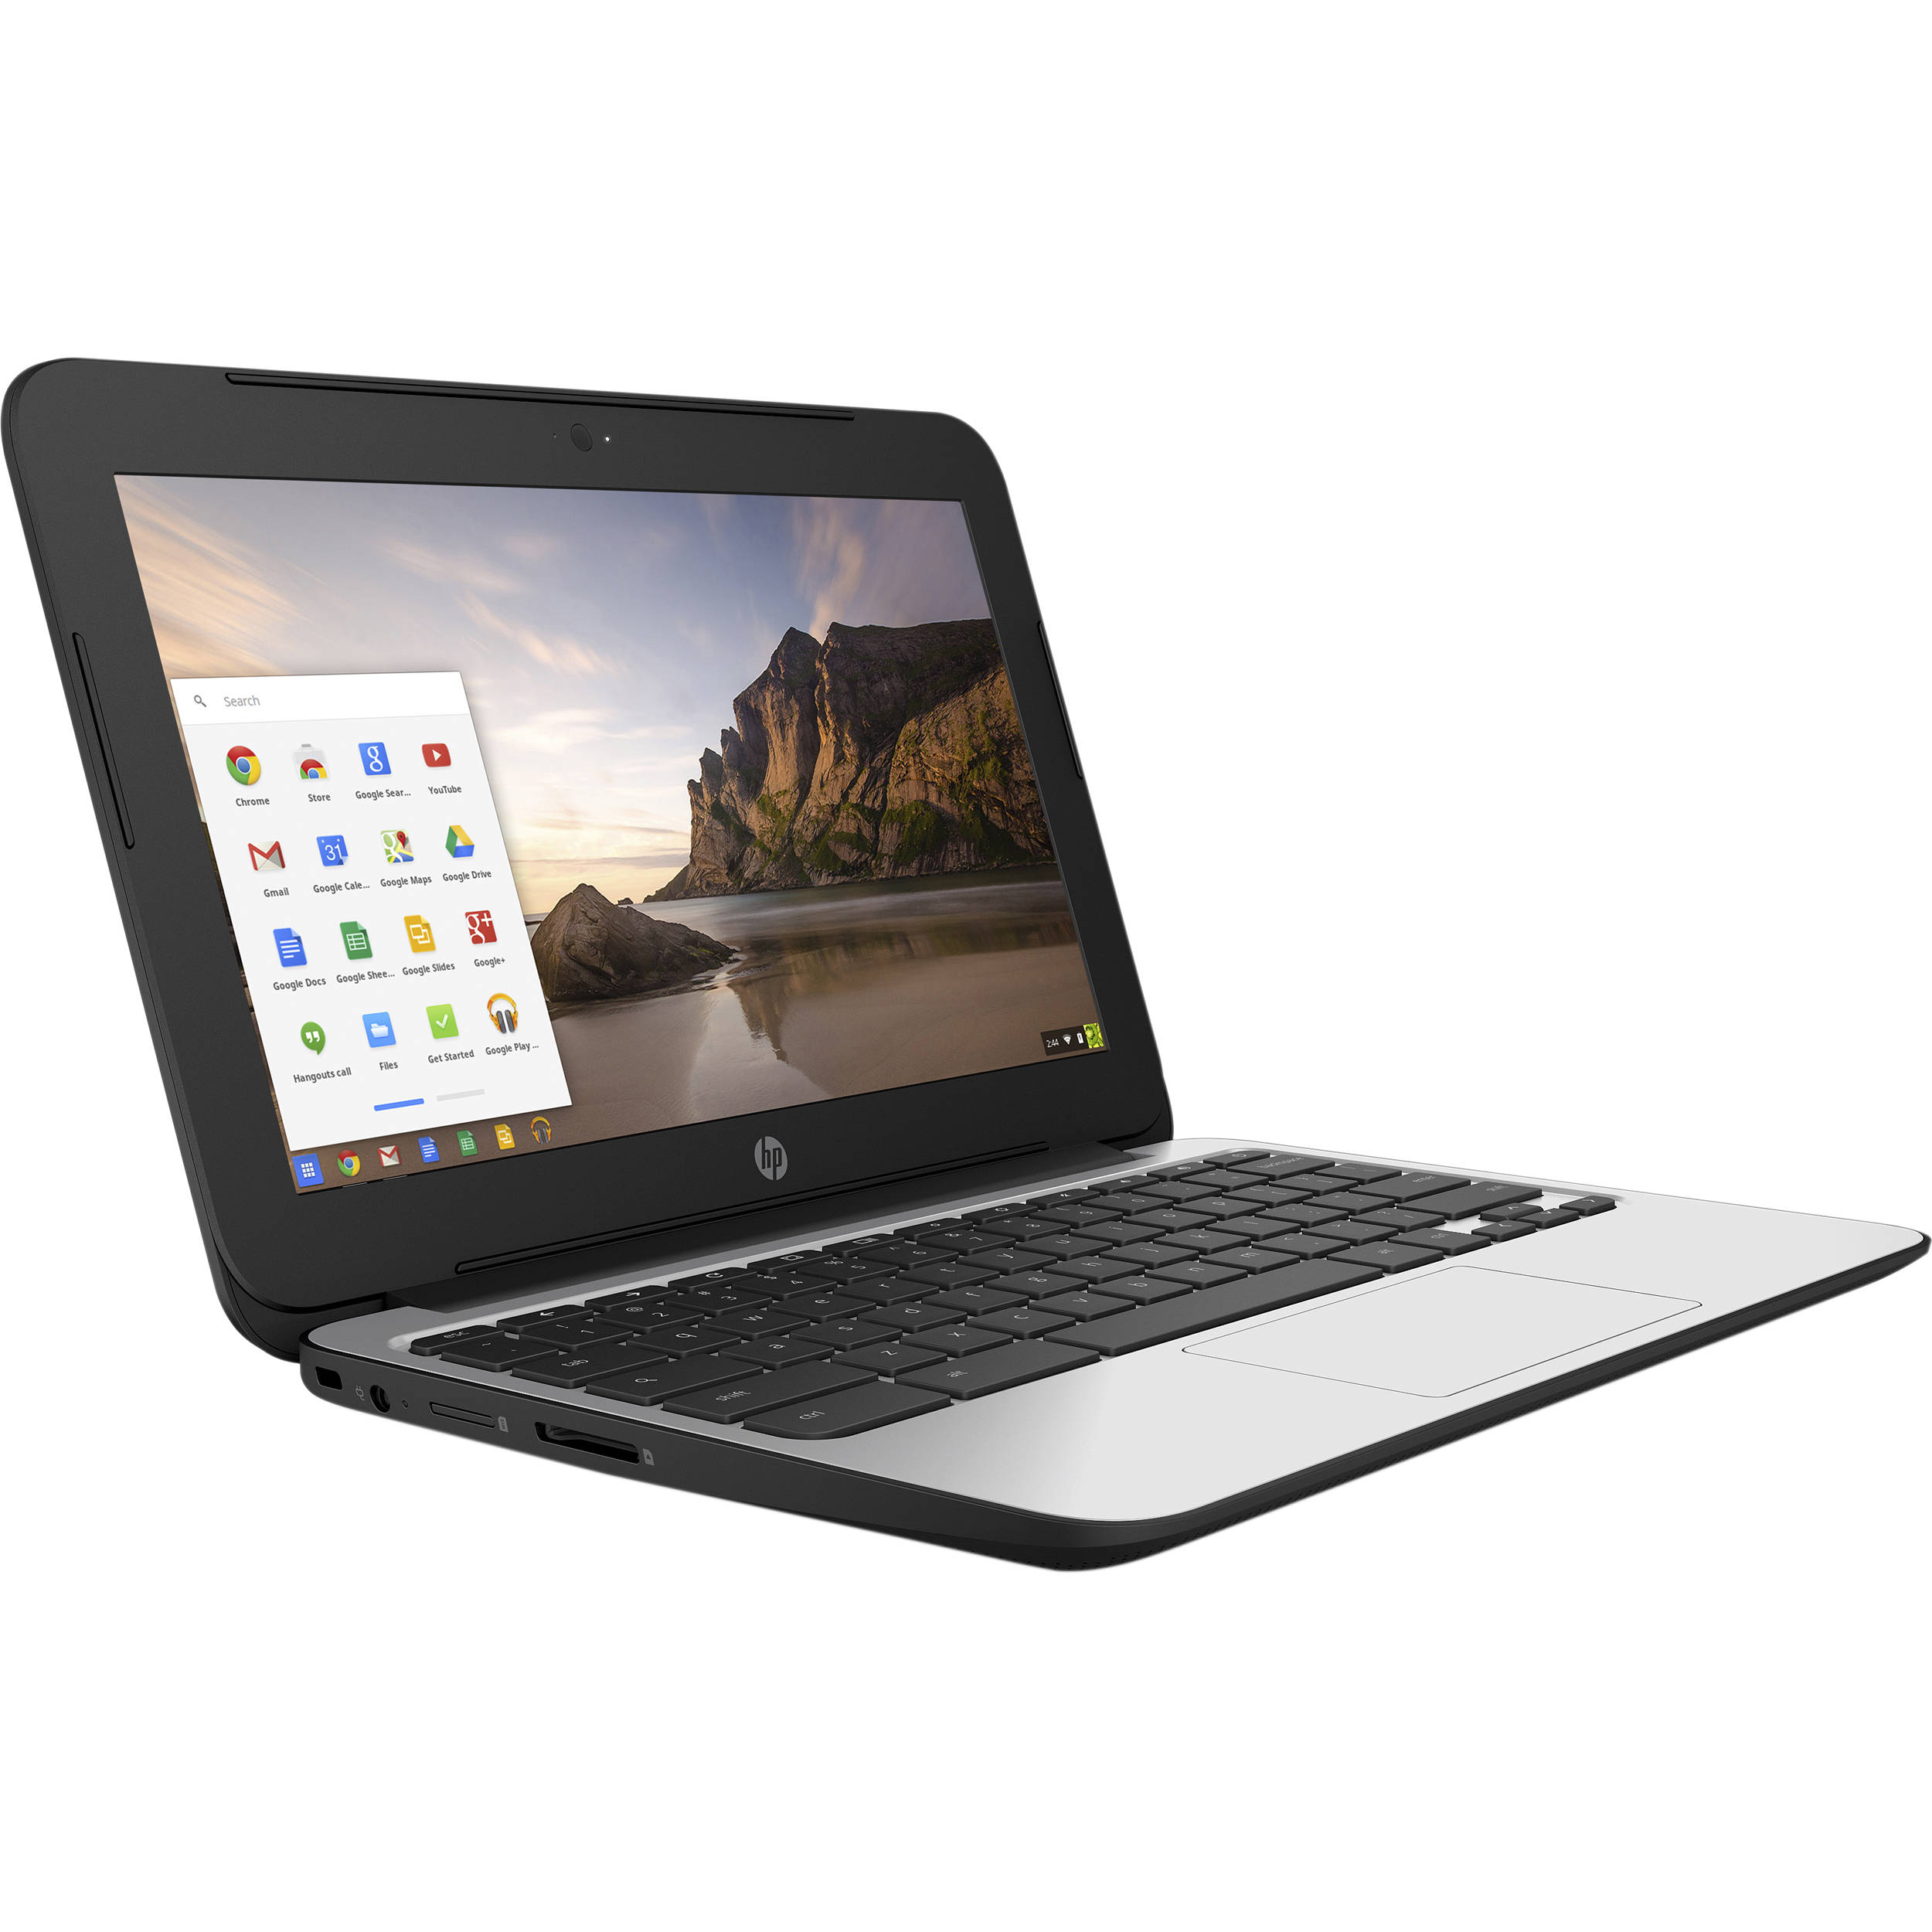 HP Chromebook 11 G4 with 32GB SSD and 100GB Google Drive Storage